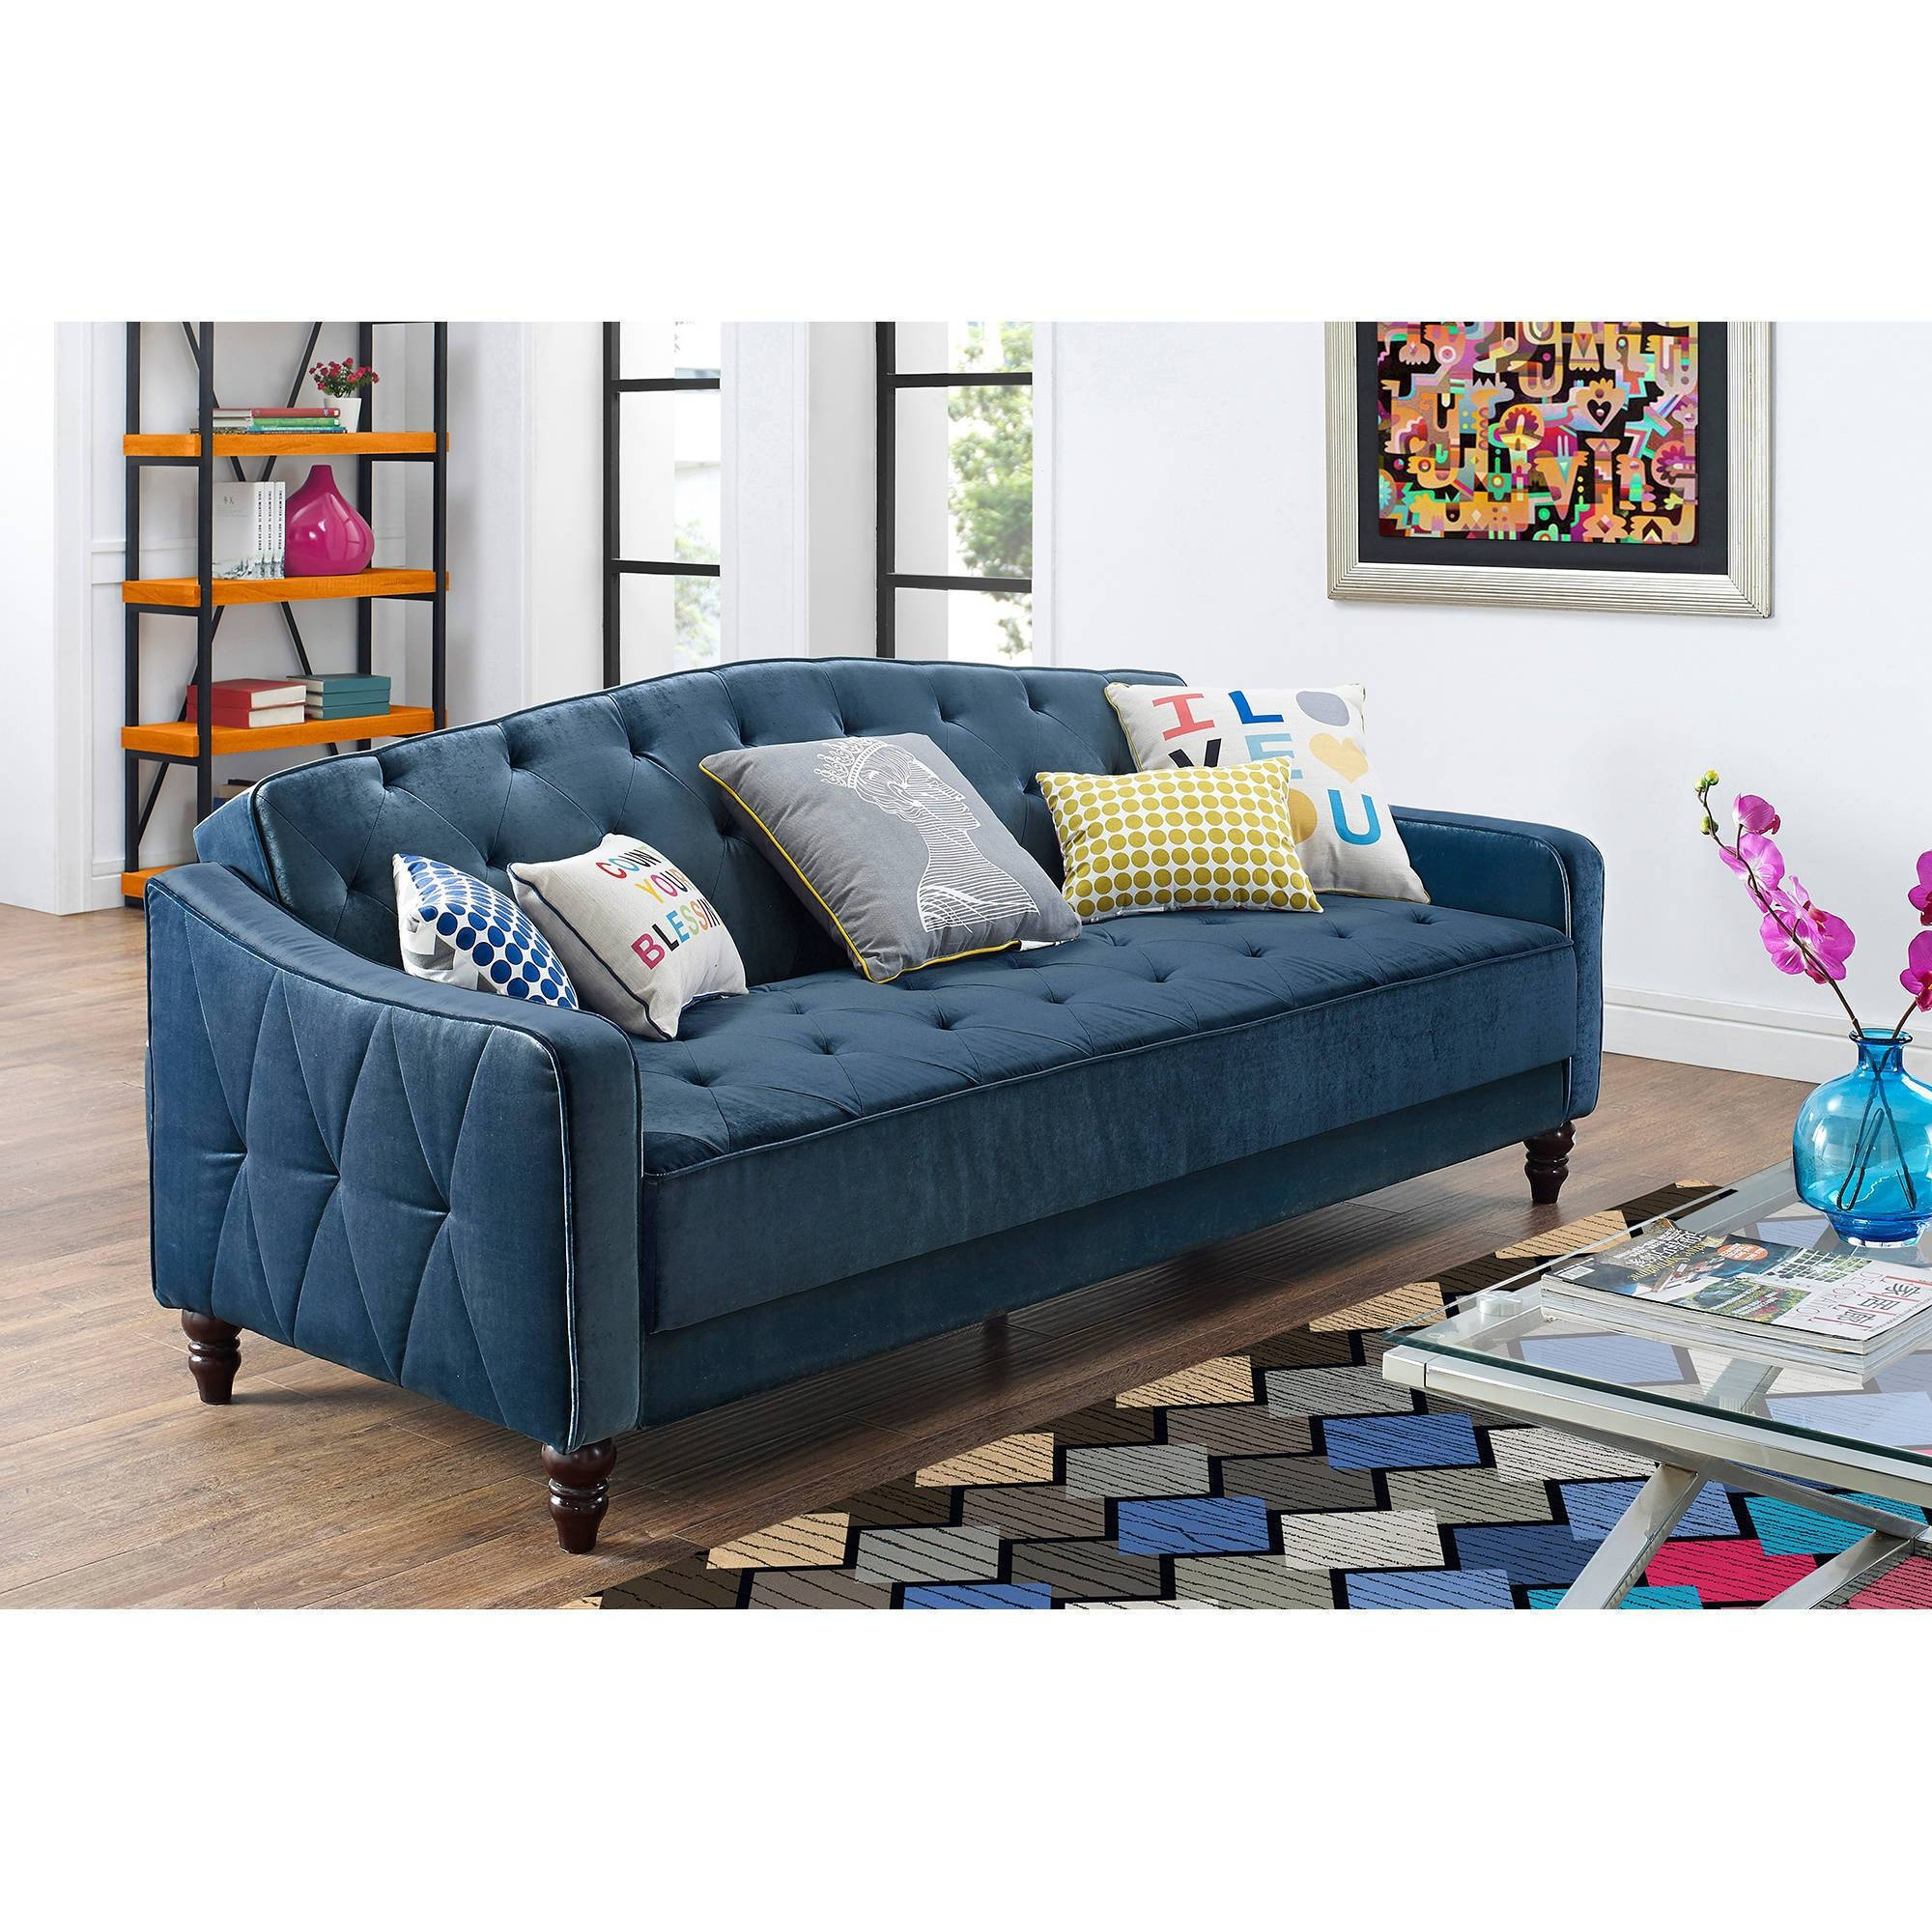 15 Best Collection Of Mainstays Contempo Futon Sofa Beds